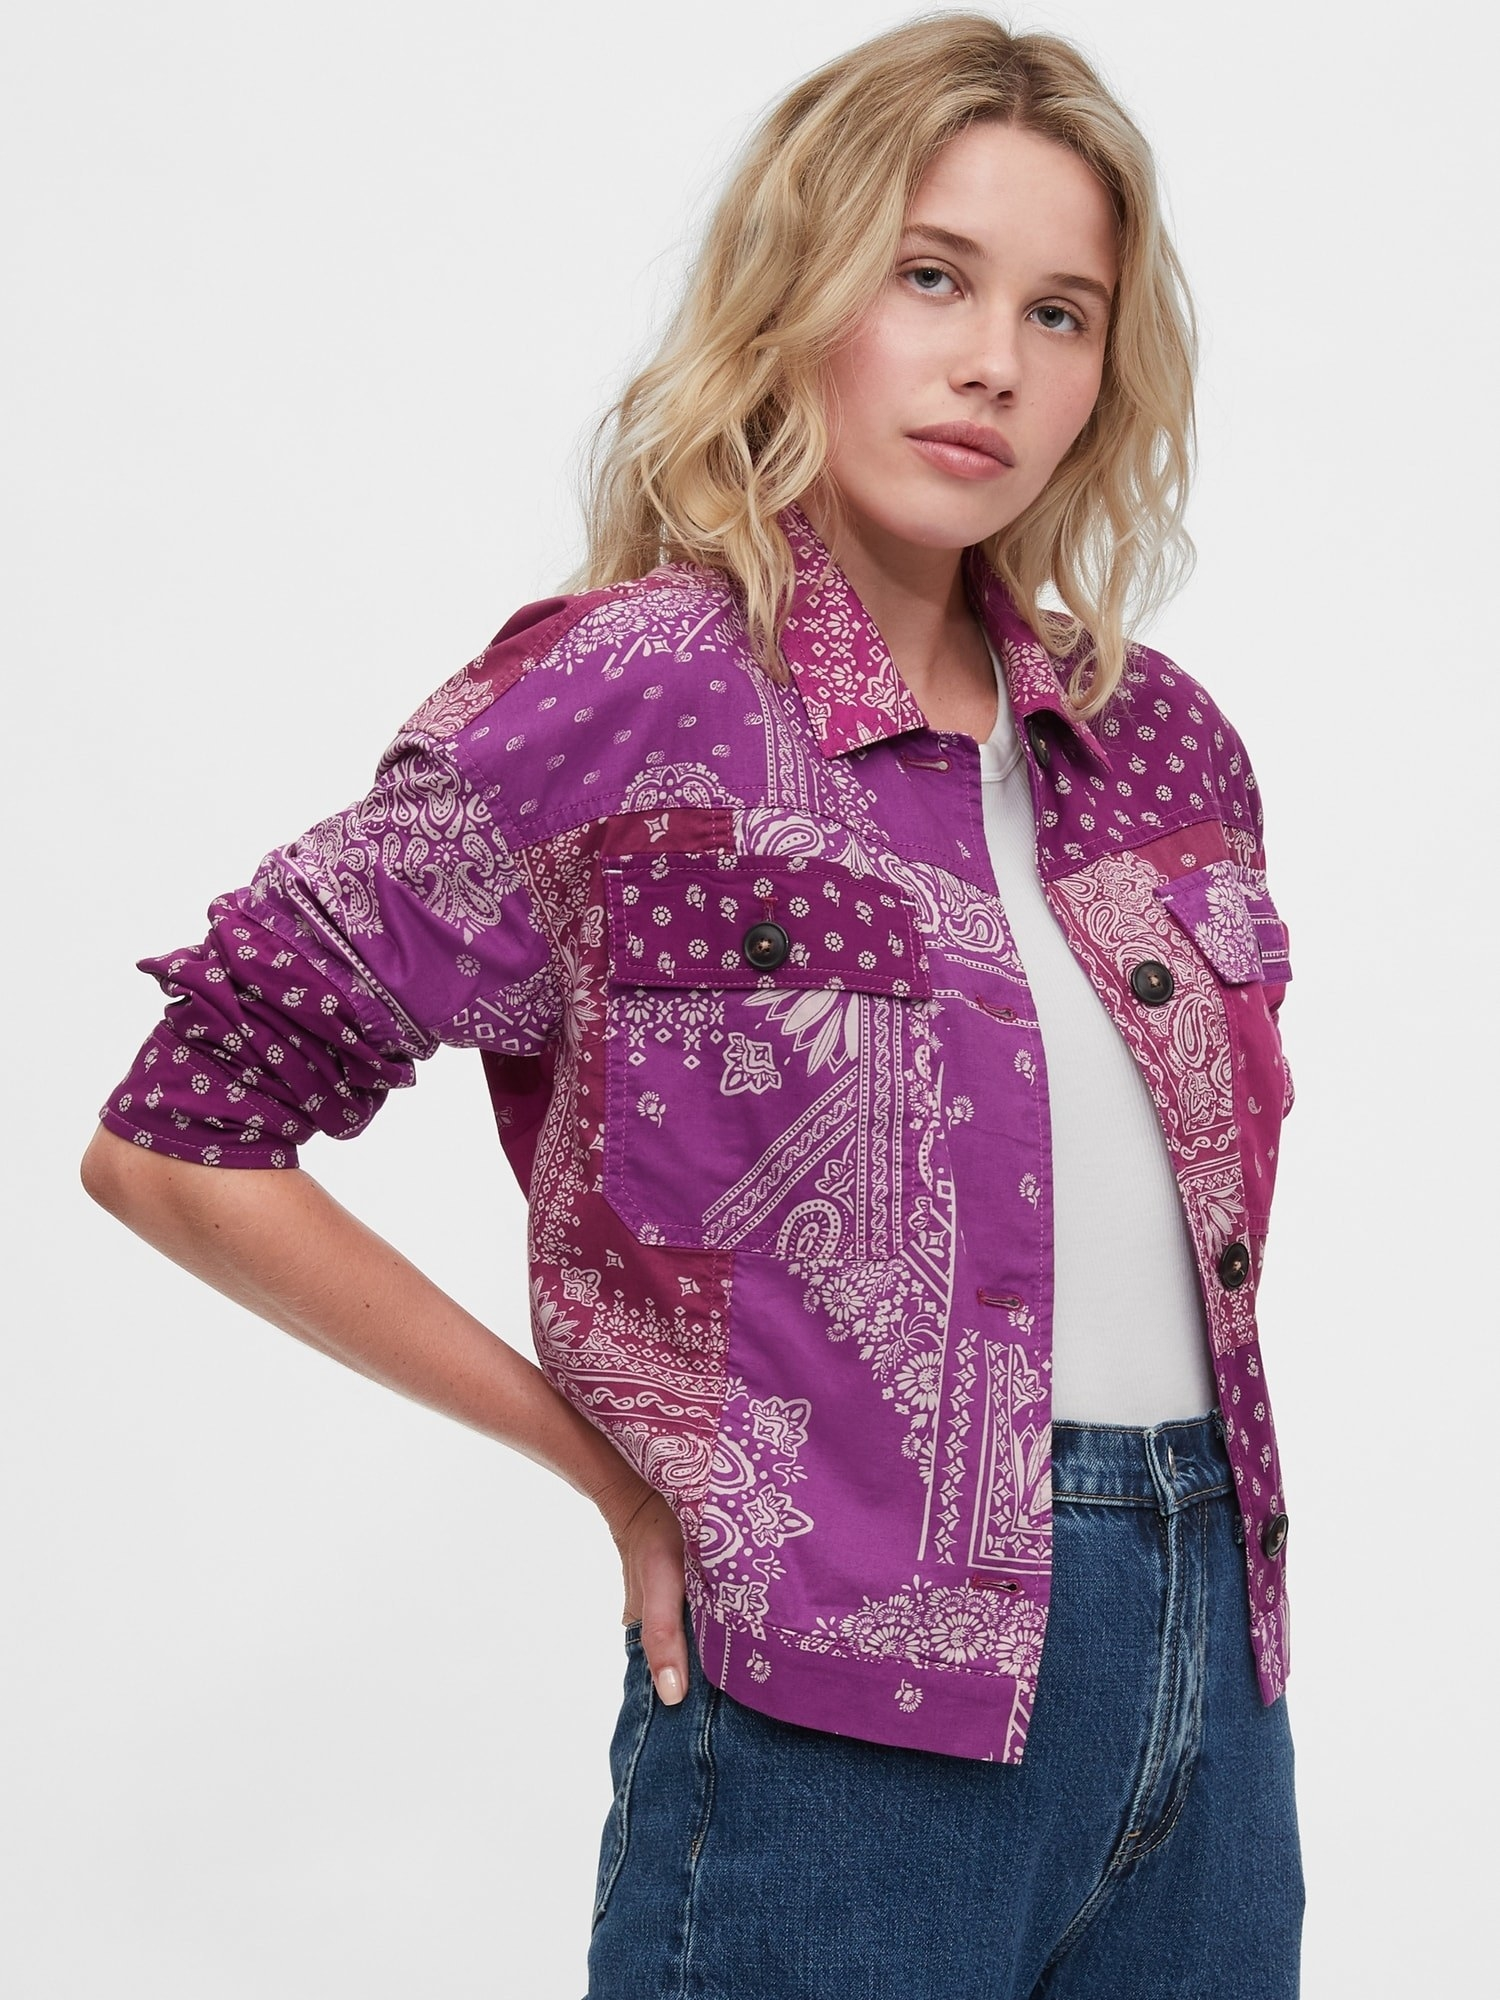 A model wearing the collared, button front, purple and pink jacket in mixed paisley and bandana-esque prints with jeans